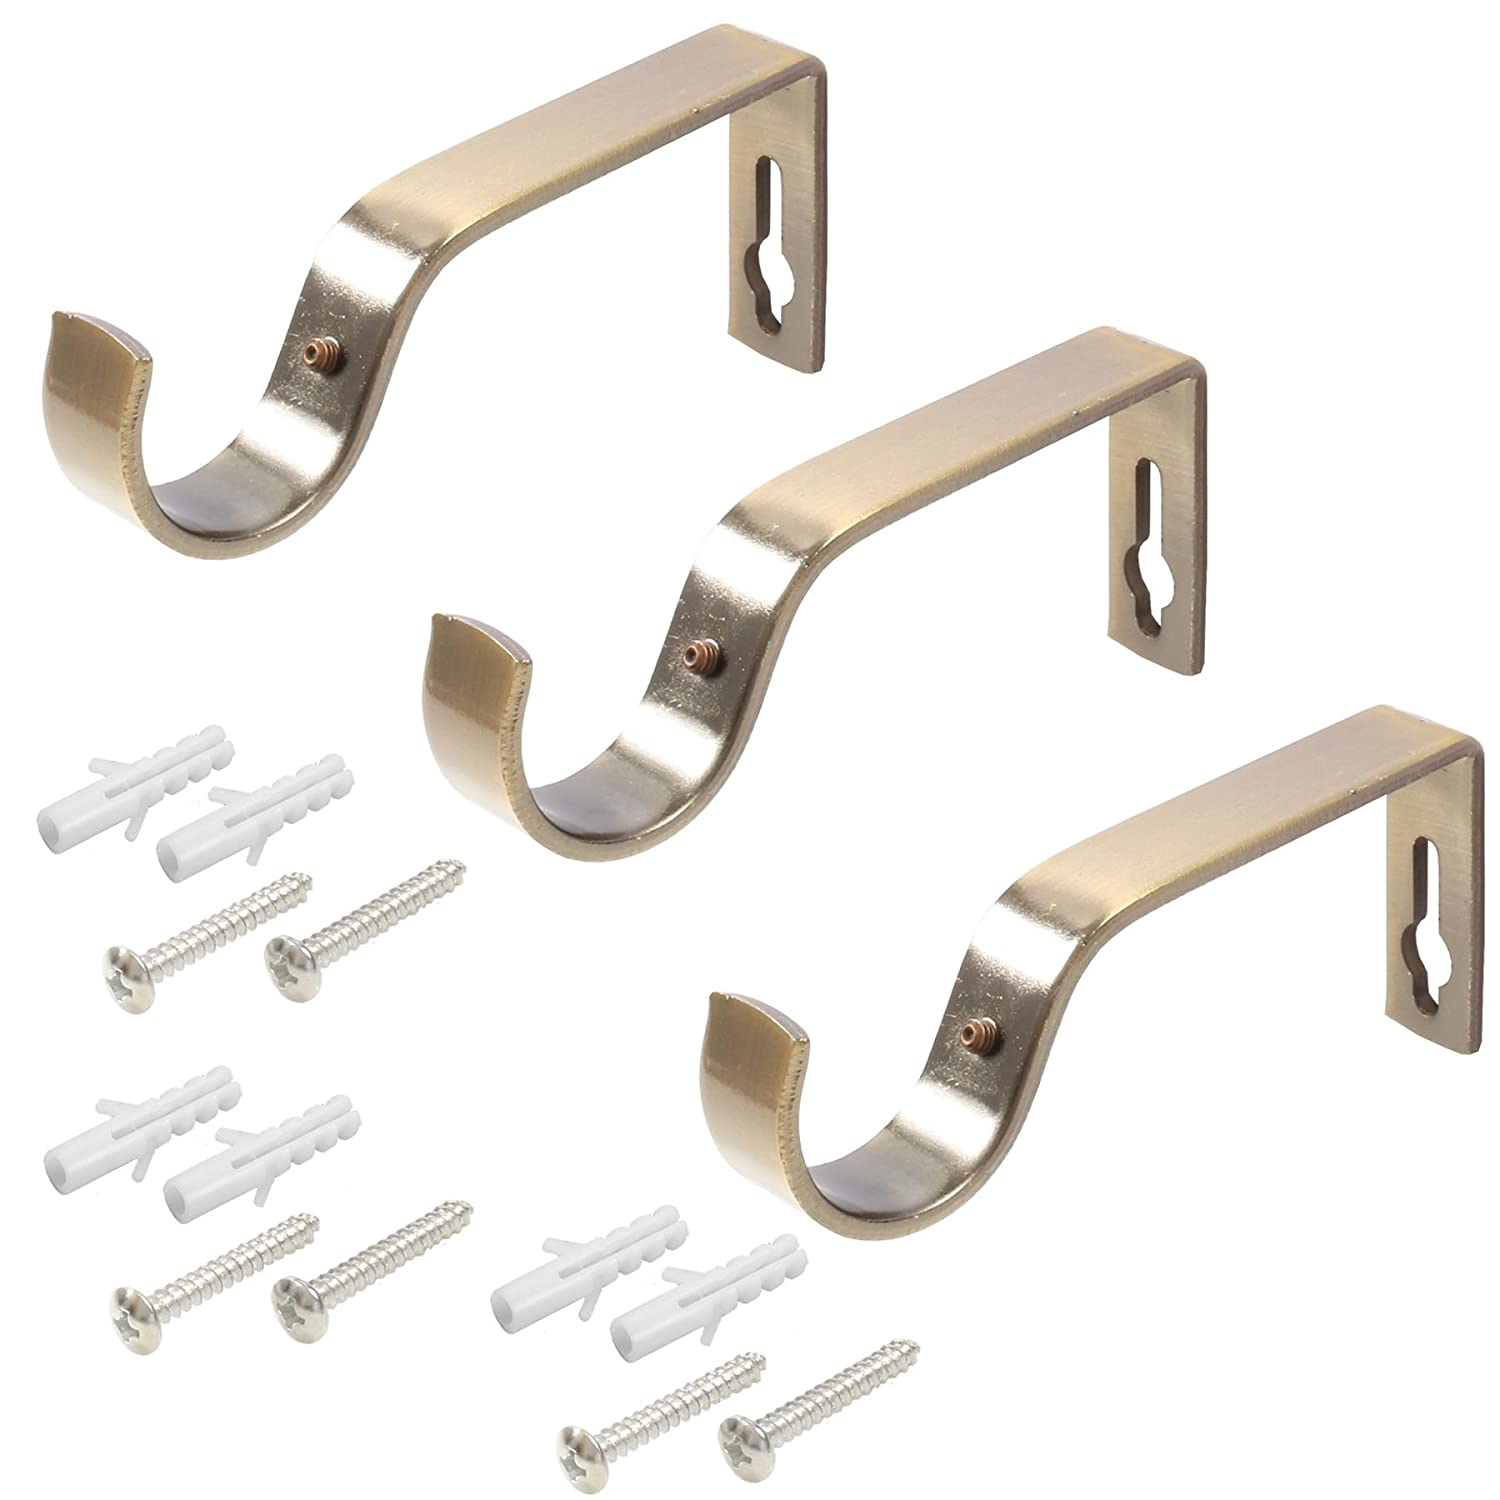 3x Large 28mm Antique Brass Curtain Pole Holder Brackets White Hinge